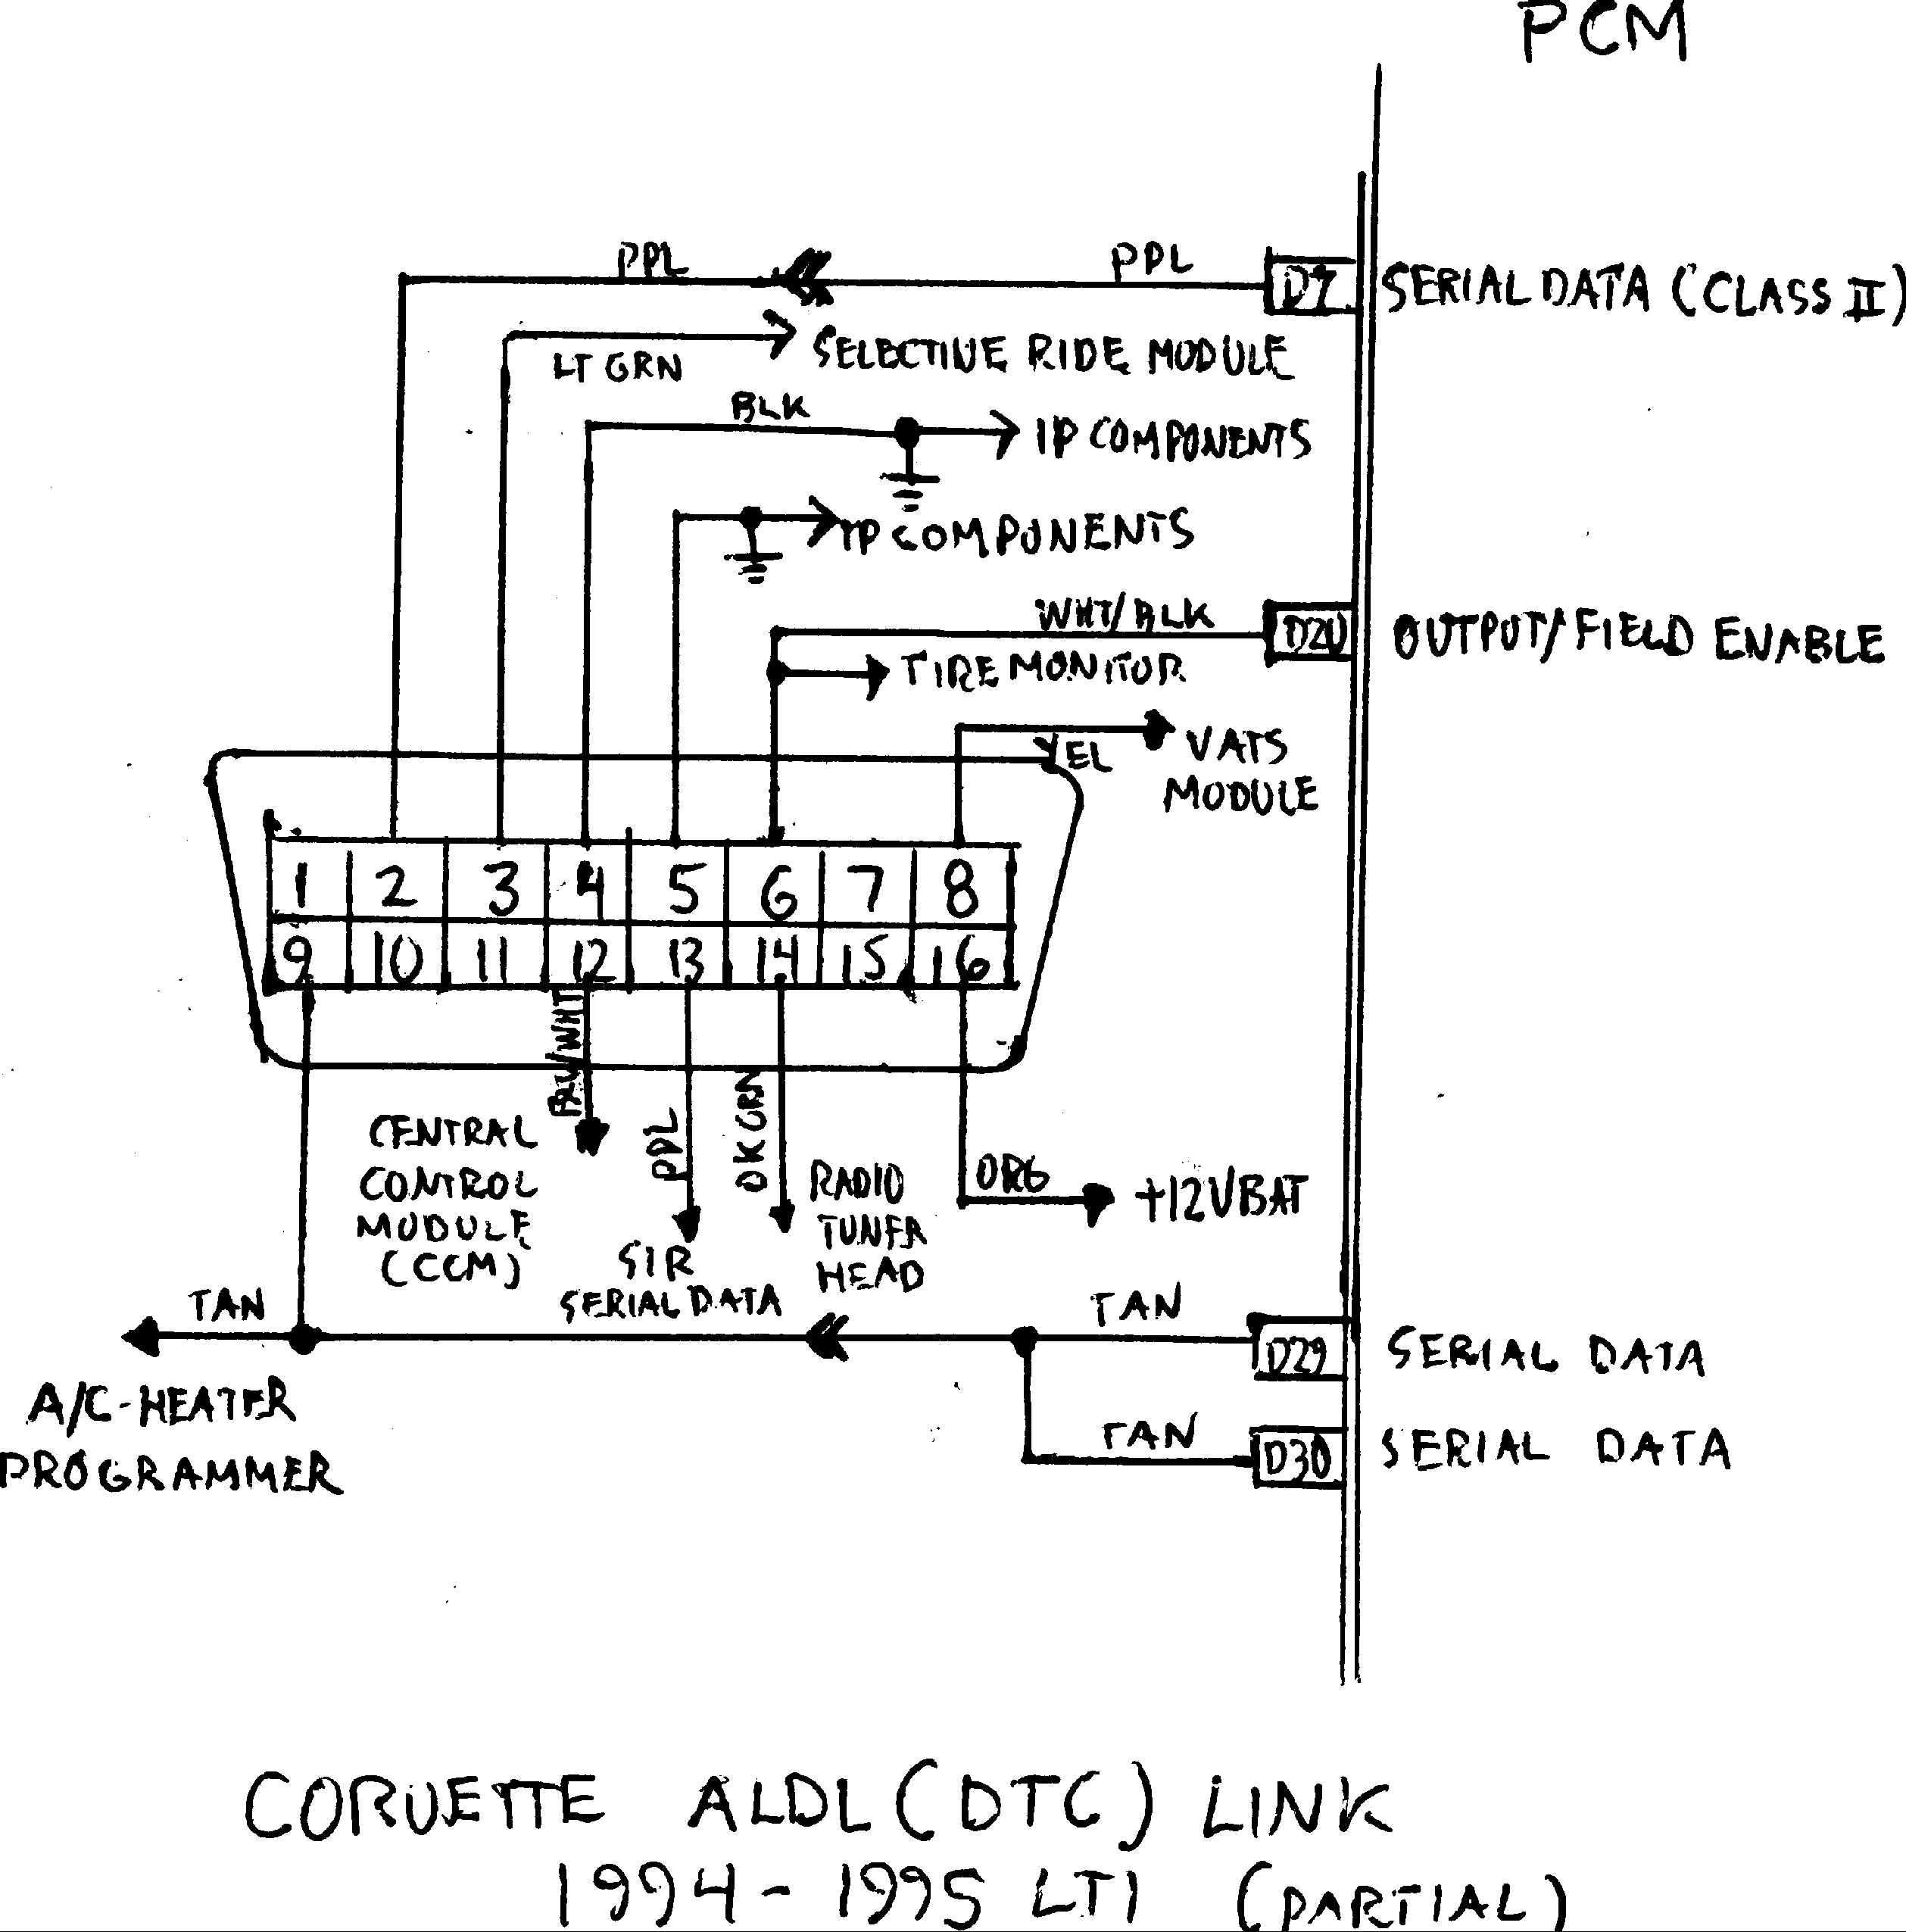 [SCHEMATICS_48IS]  TK_5657] With Obd2 To Usb Cable Wiring Diagram On Wiring Diagrams Obd2  Cables Download Diagram | Cadillac Obd Ii Wiring Diagram |  | Leona Rele Mohammedshrine Librar Wiring 101